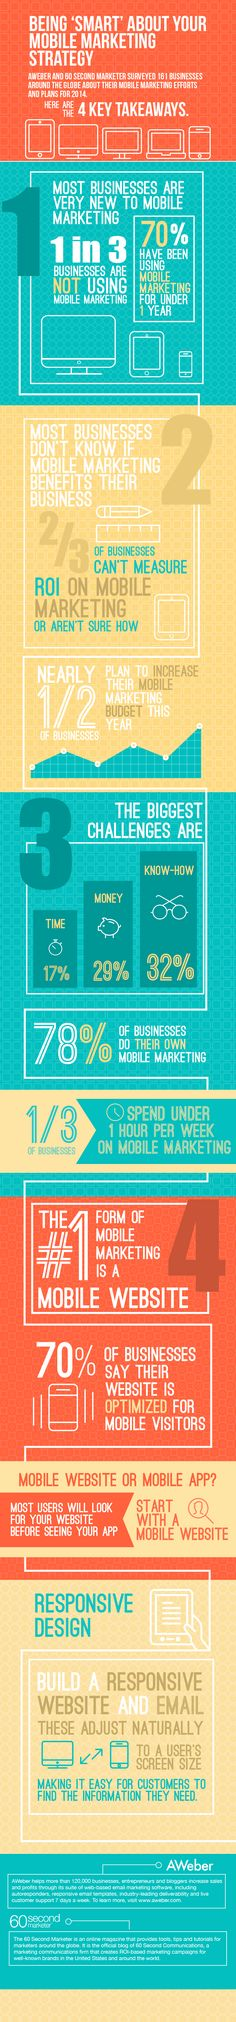 4 Things You Need to Know About Mobile Marketing in 2014 [INFOGRAPHIC]